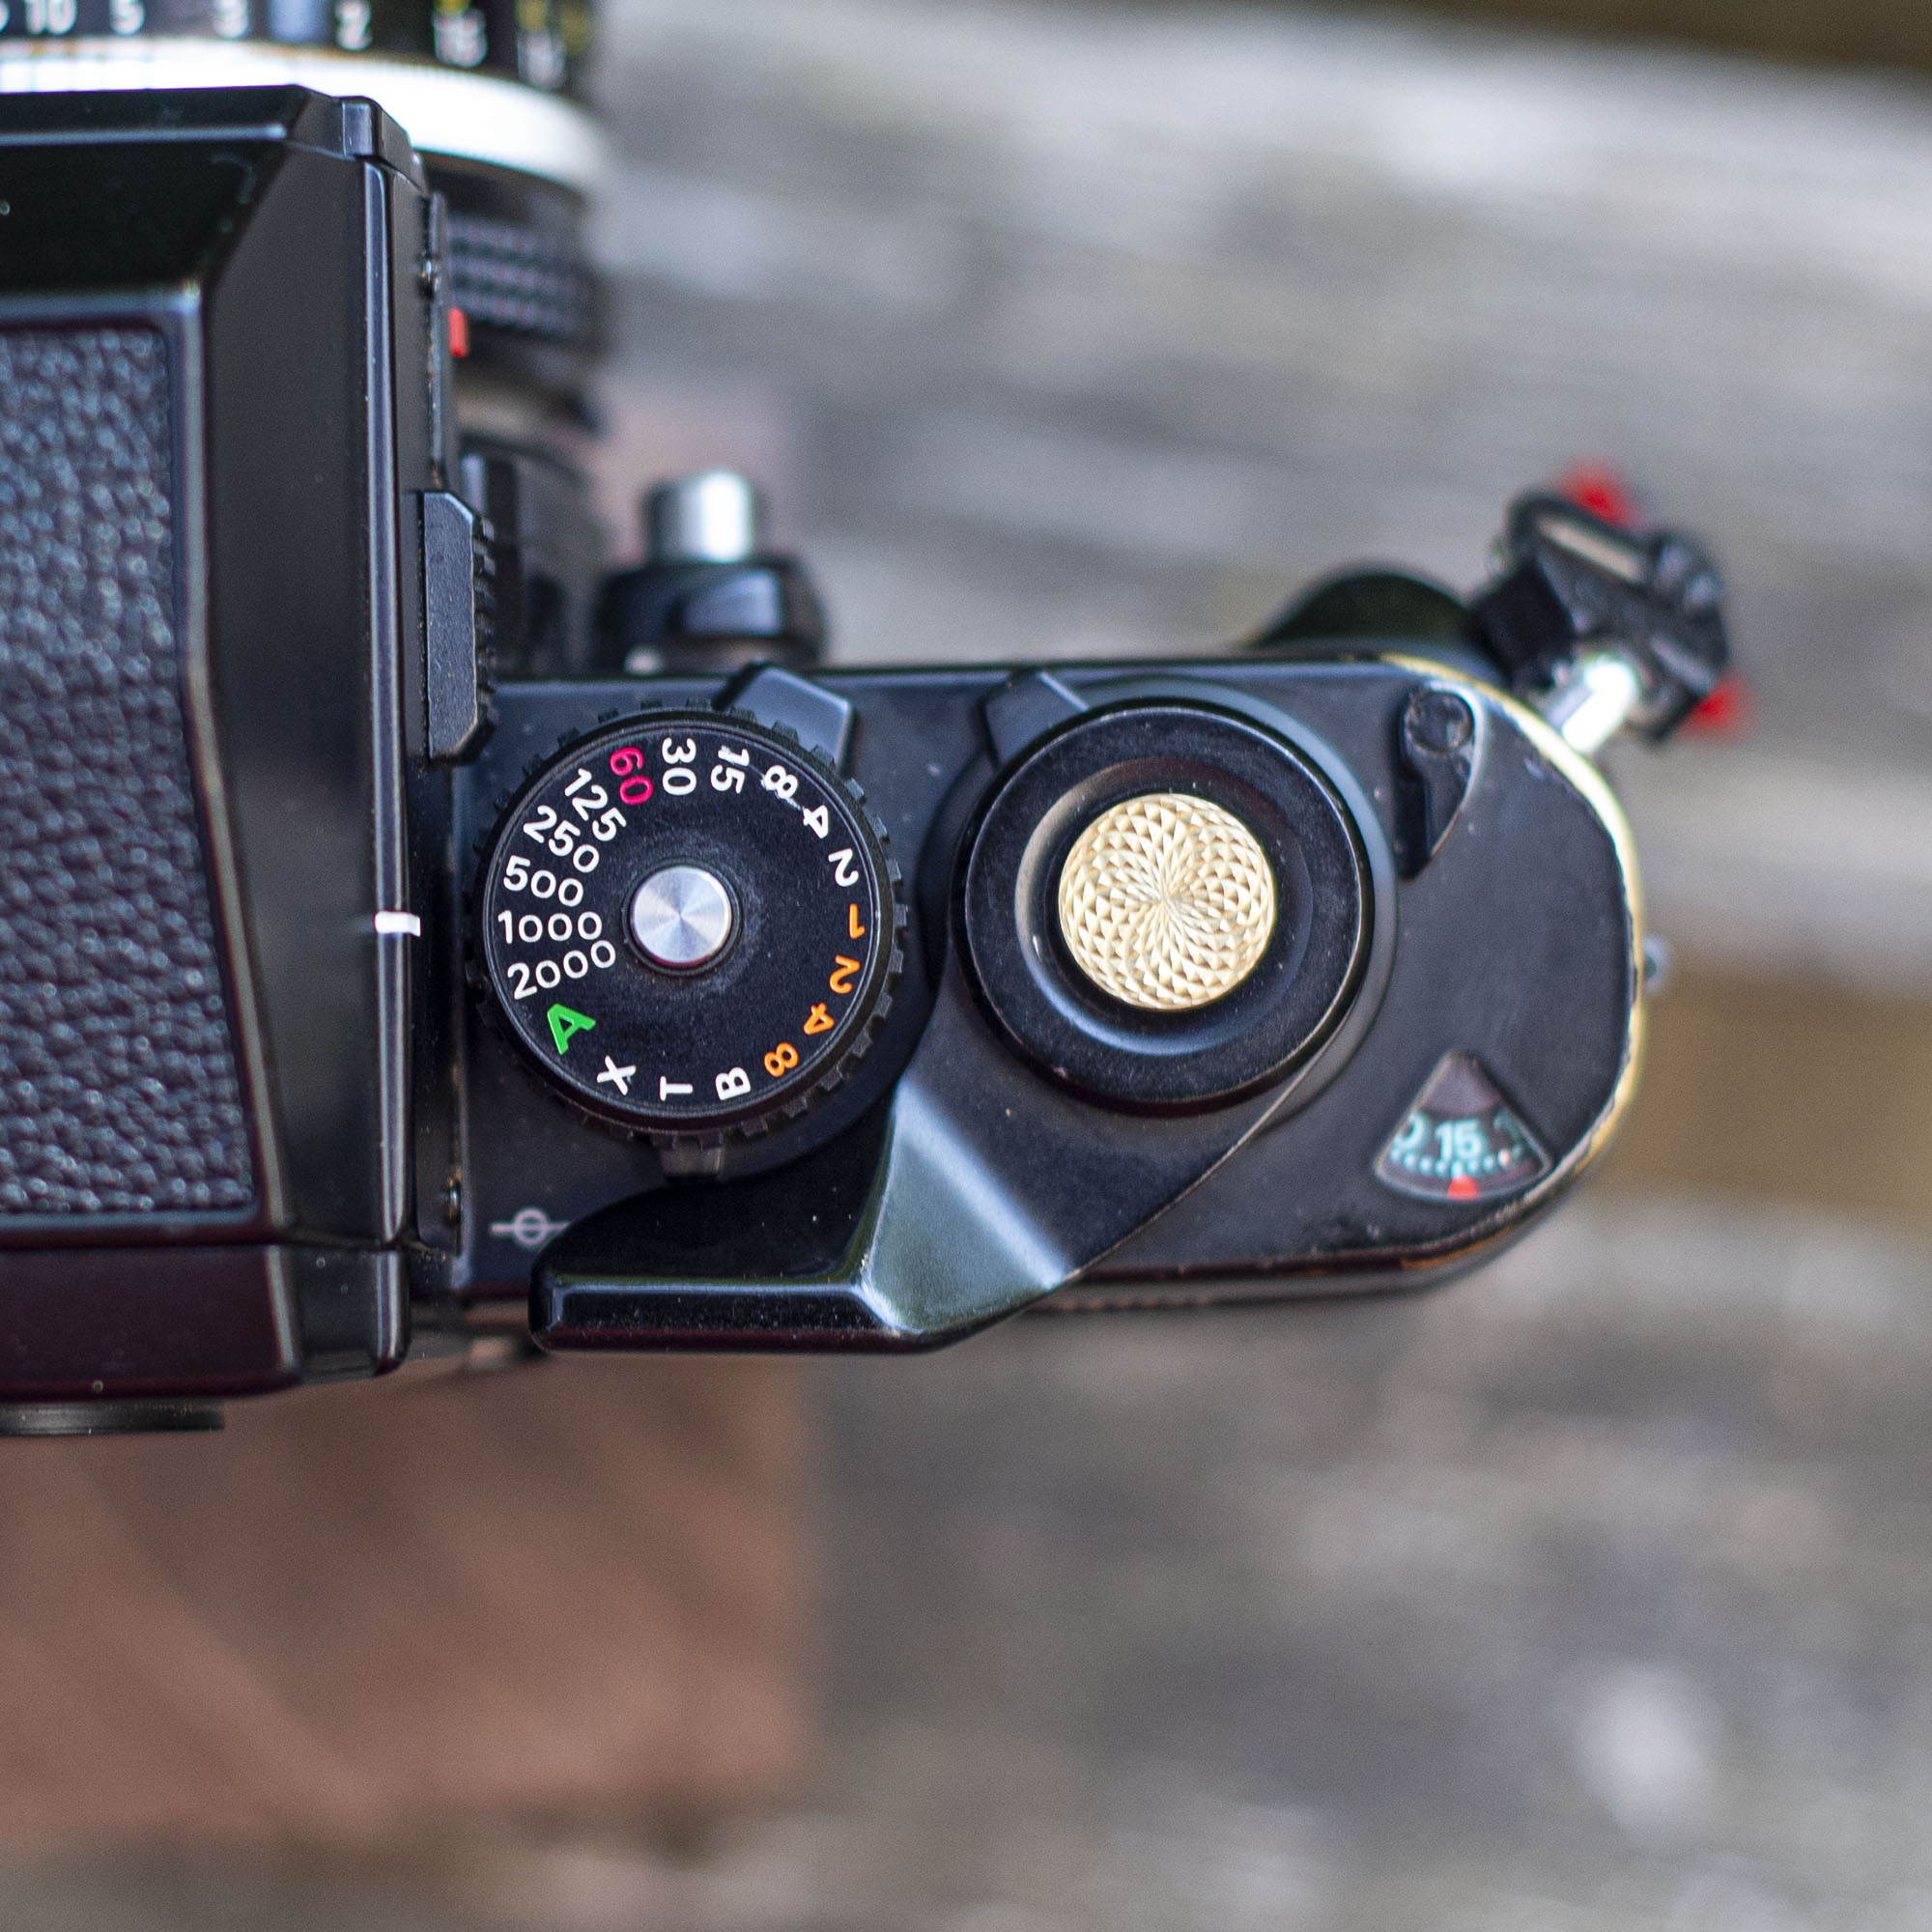 Nikon F3 shutter speed dial and shutter button